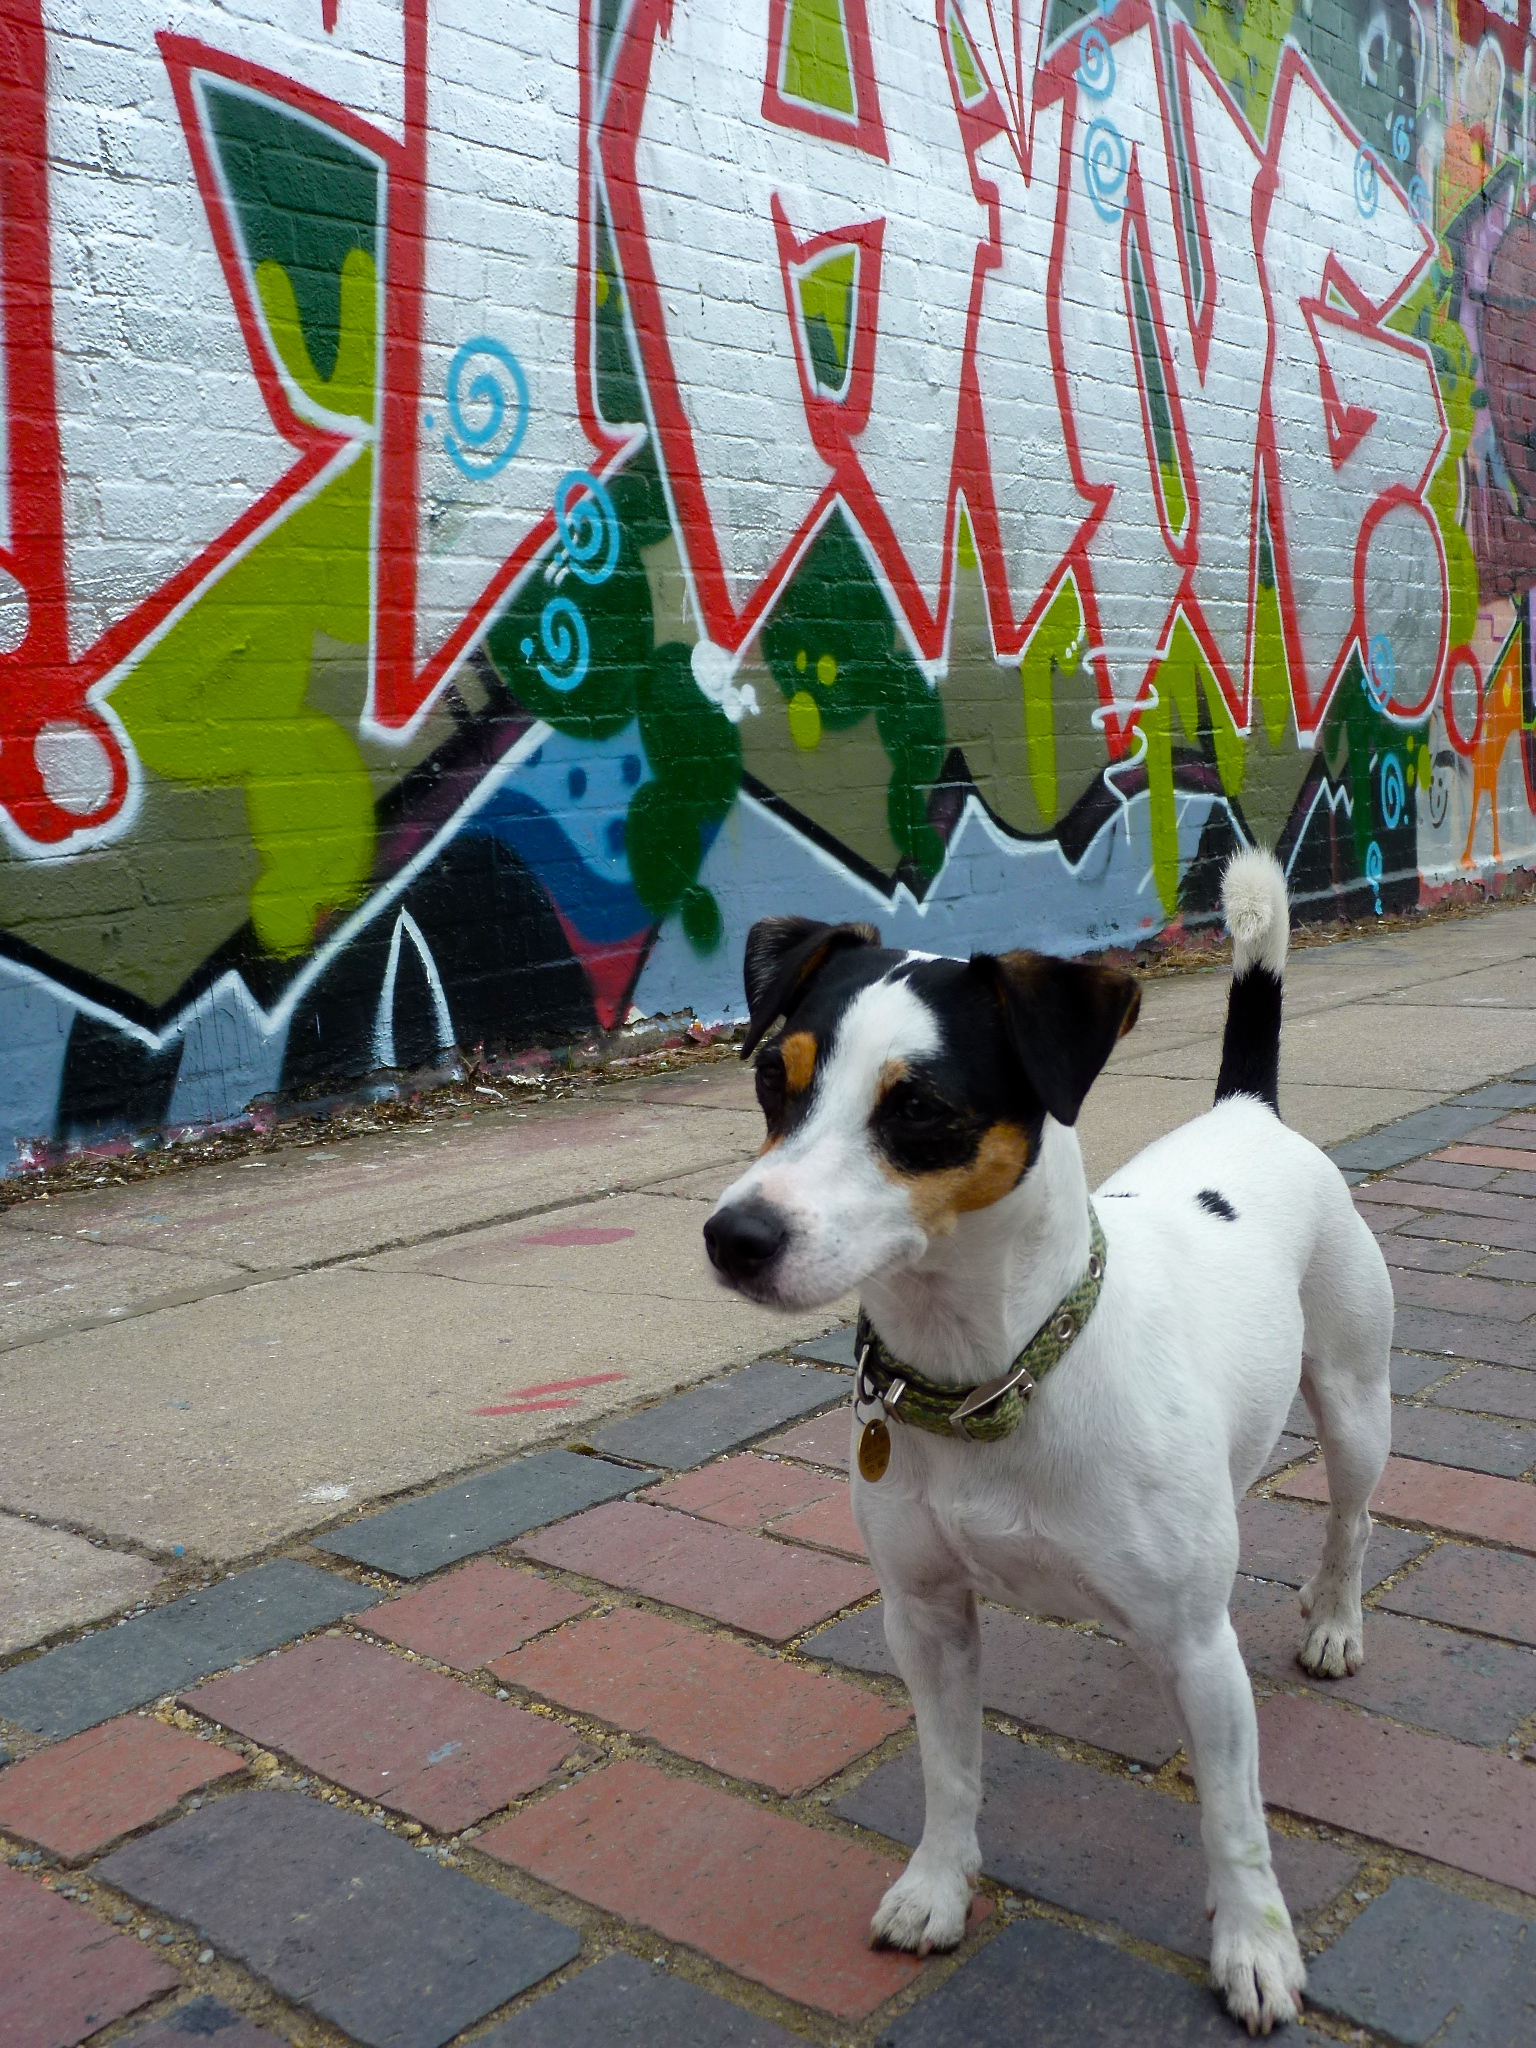 Olive Daddy likes to take pictures of graffiti art. While he takes pictures I like to smell things. My sense of smell is much better than humans. When I walk down the street and sniff, I can tell which other dogs have been there-- and what they've been eating. Isn't that cool? It's like reading a newspaper with my nose!What do you think I'm smelling now? What can you smell right now?